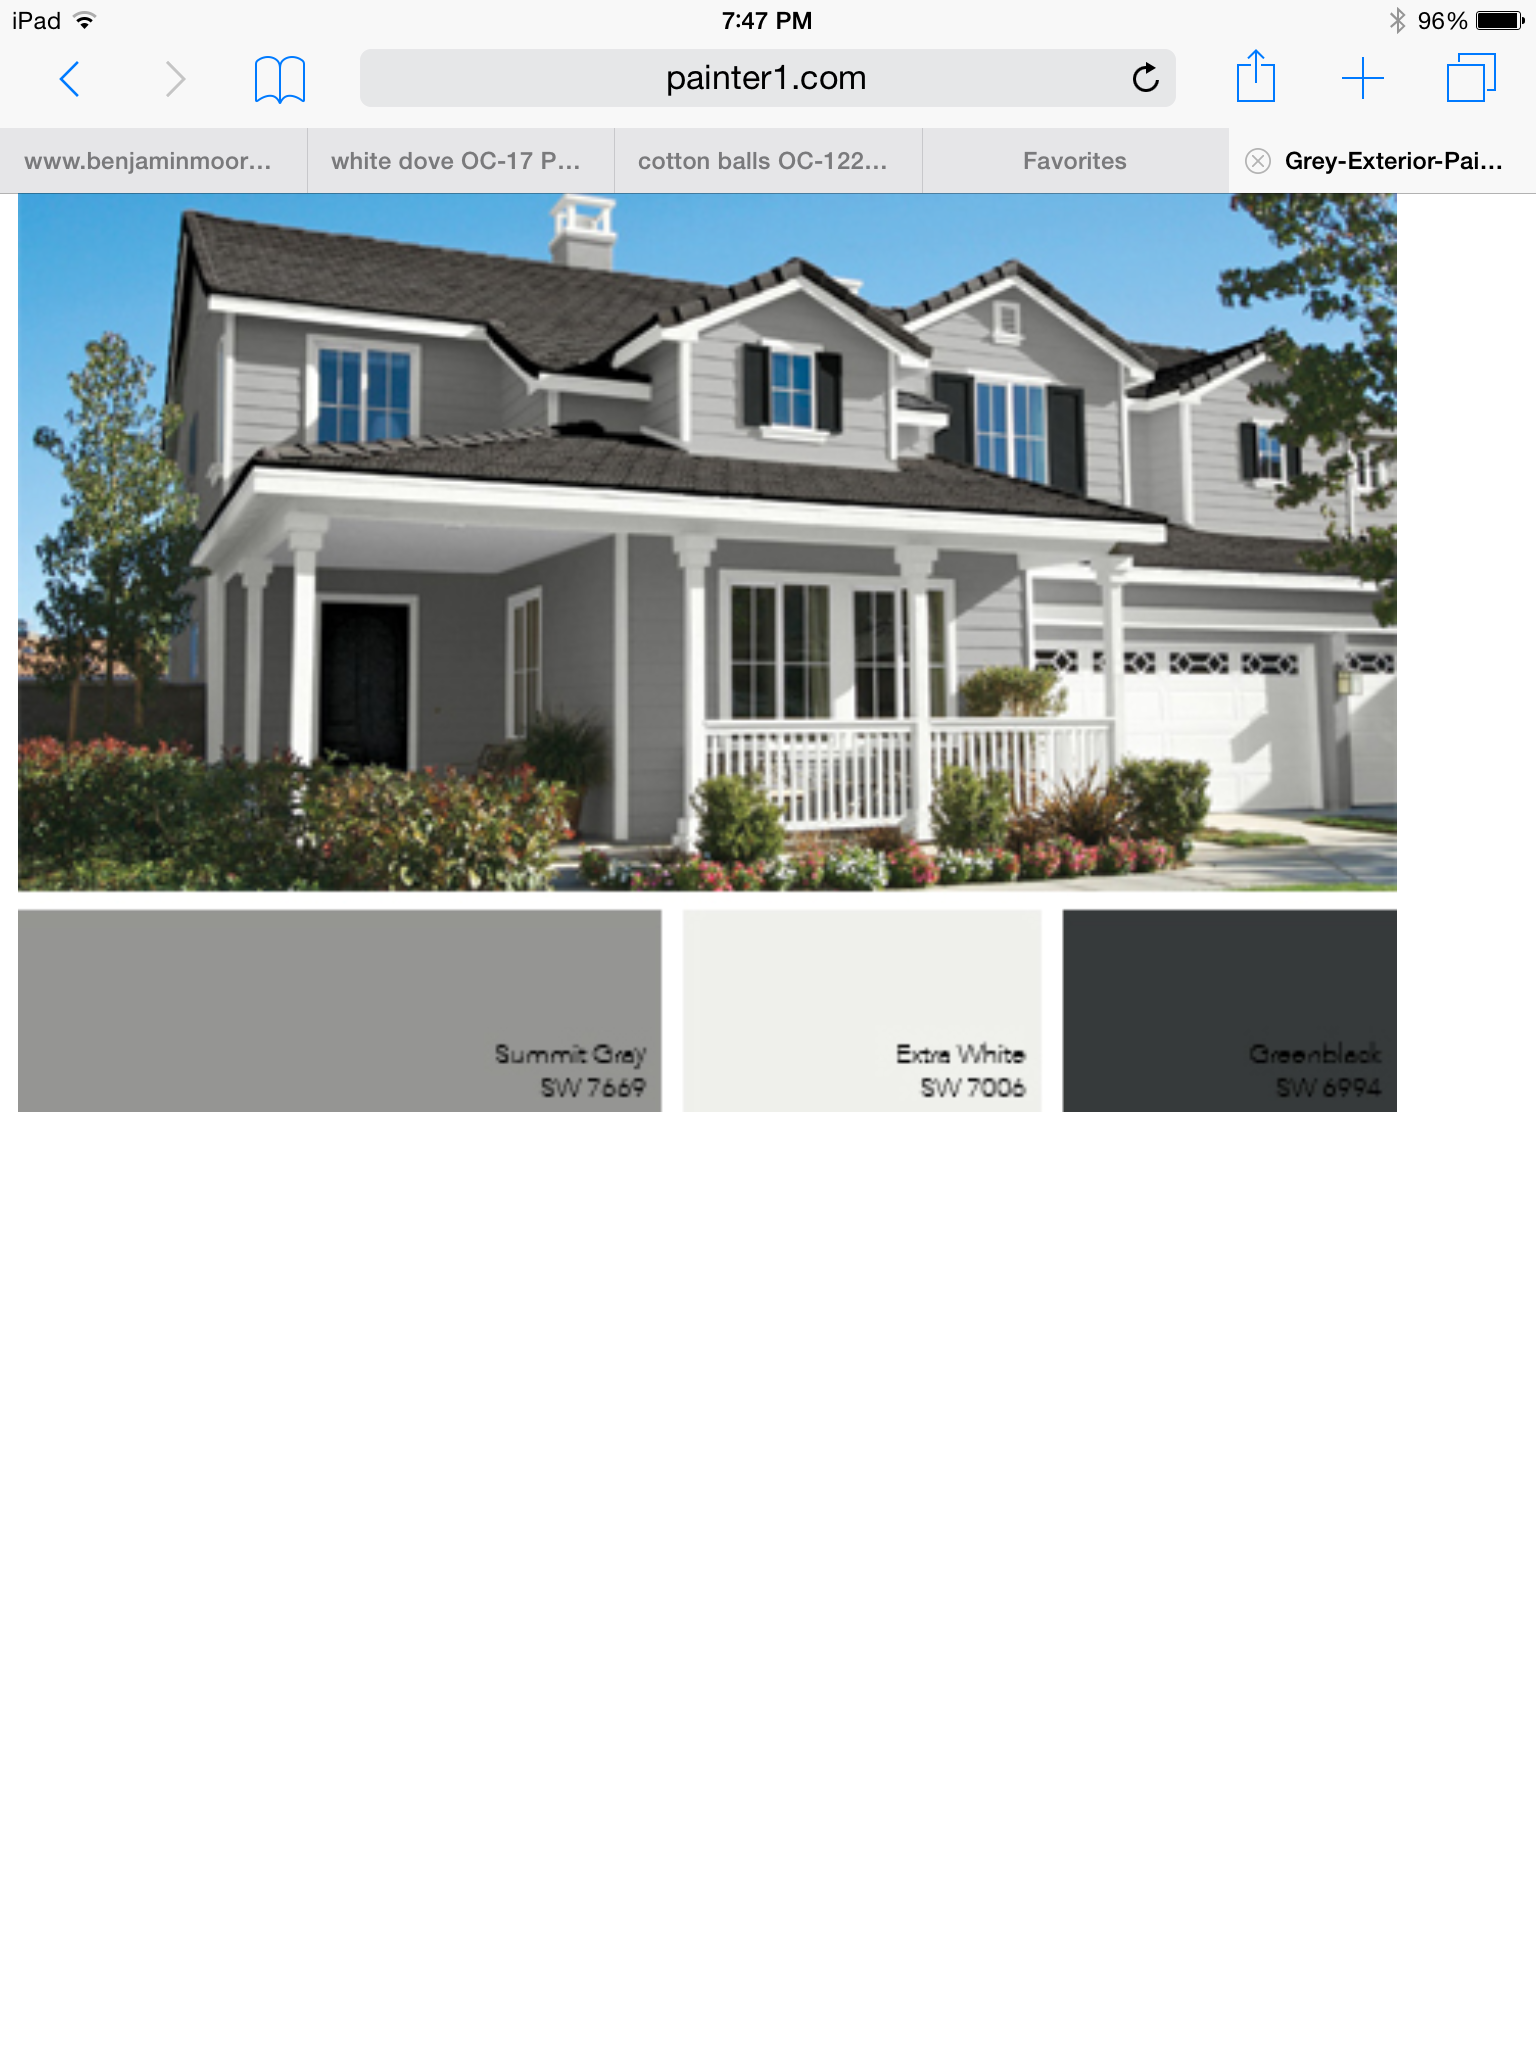 house colors   housecolors   Pinterest   House colors, House and ...